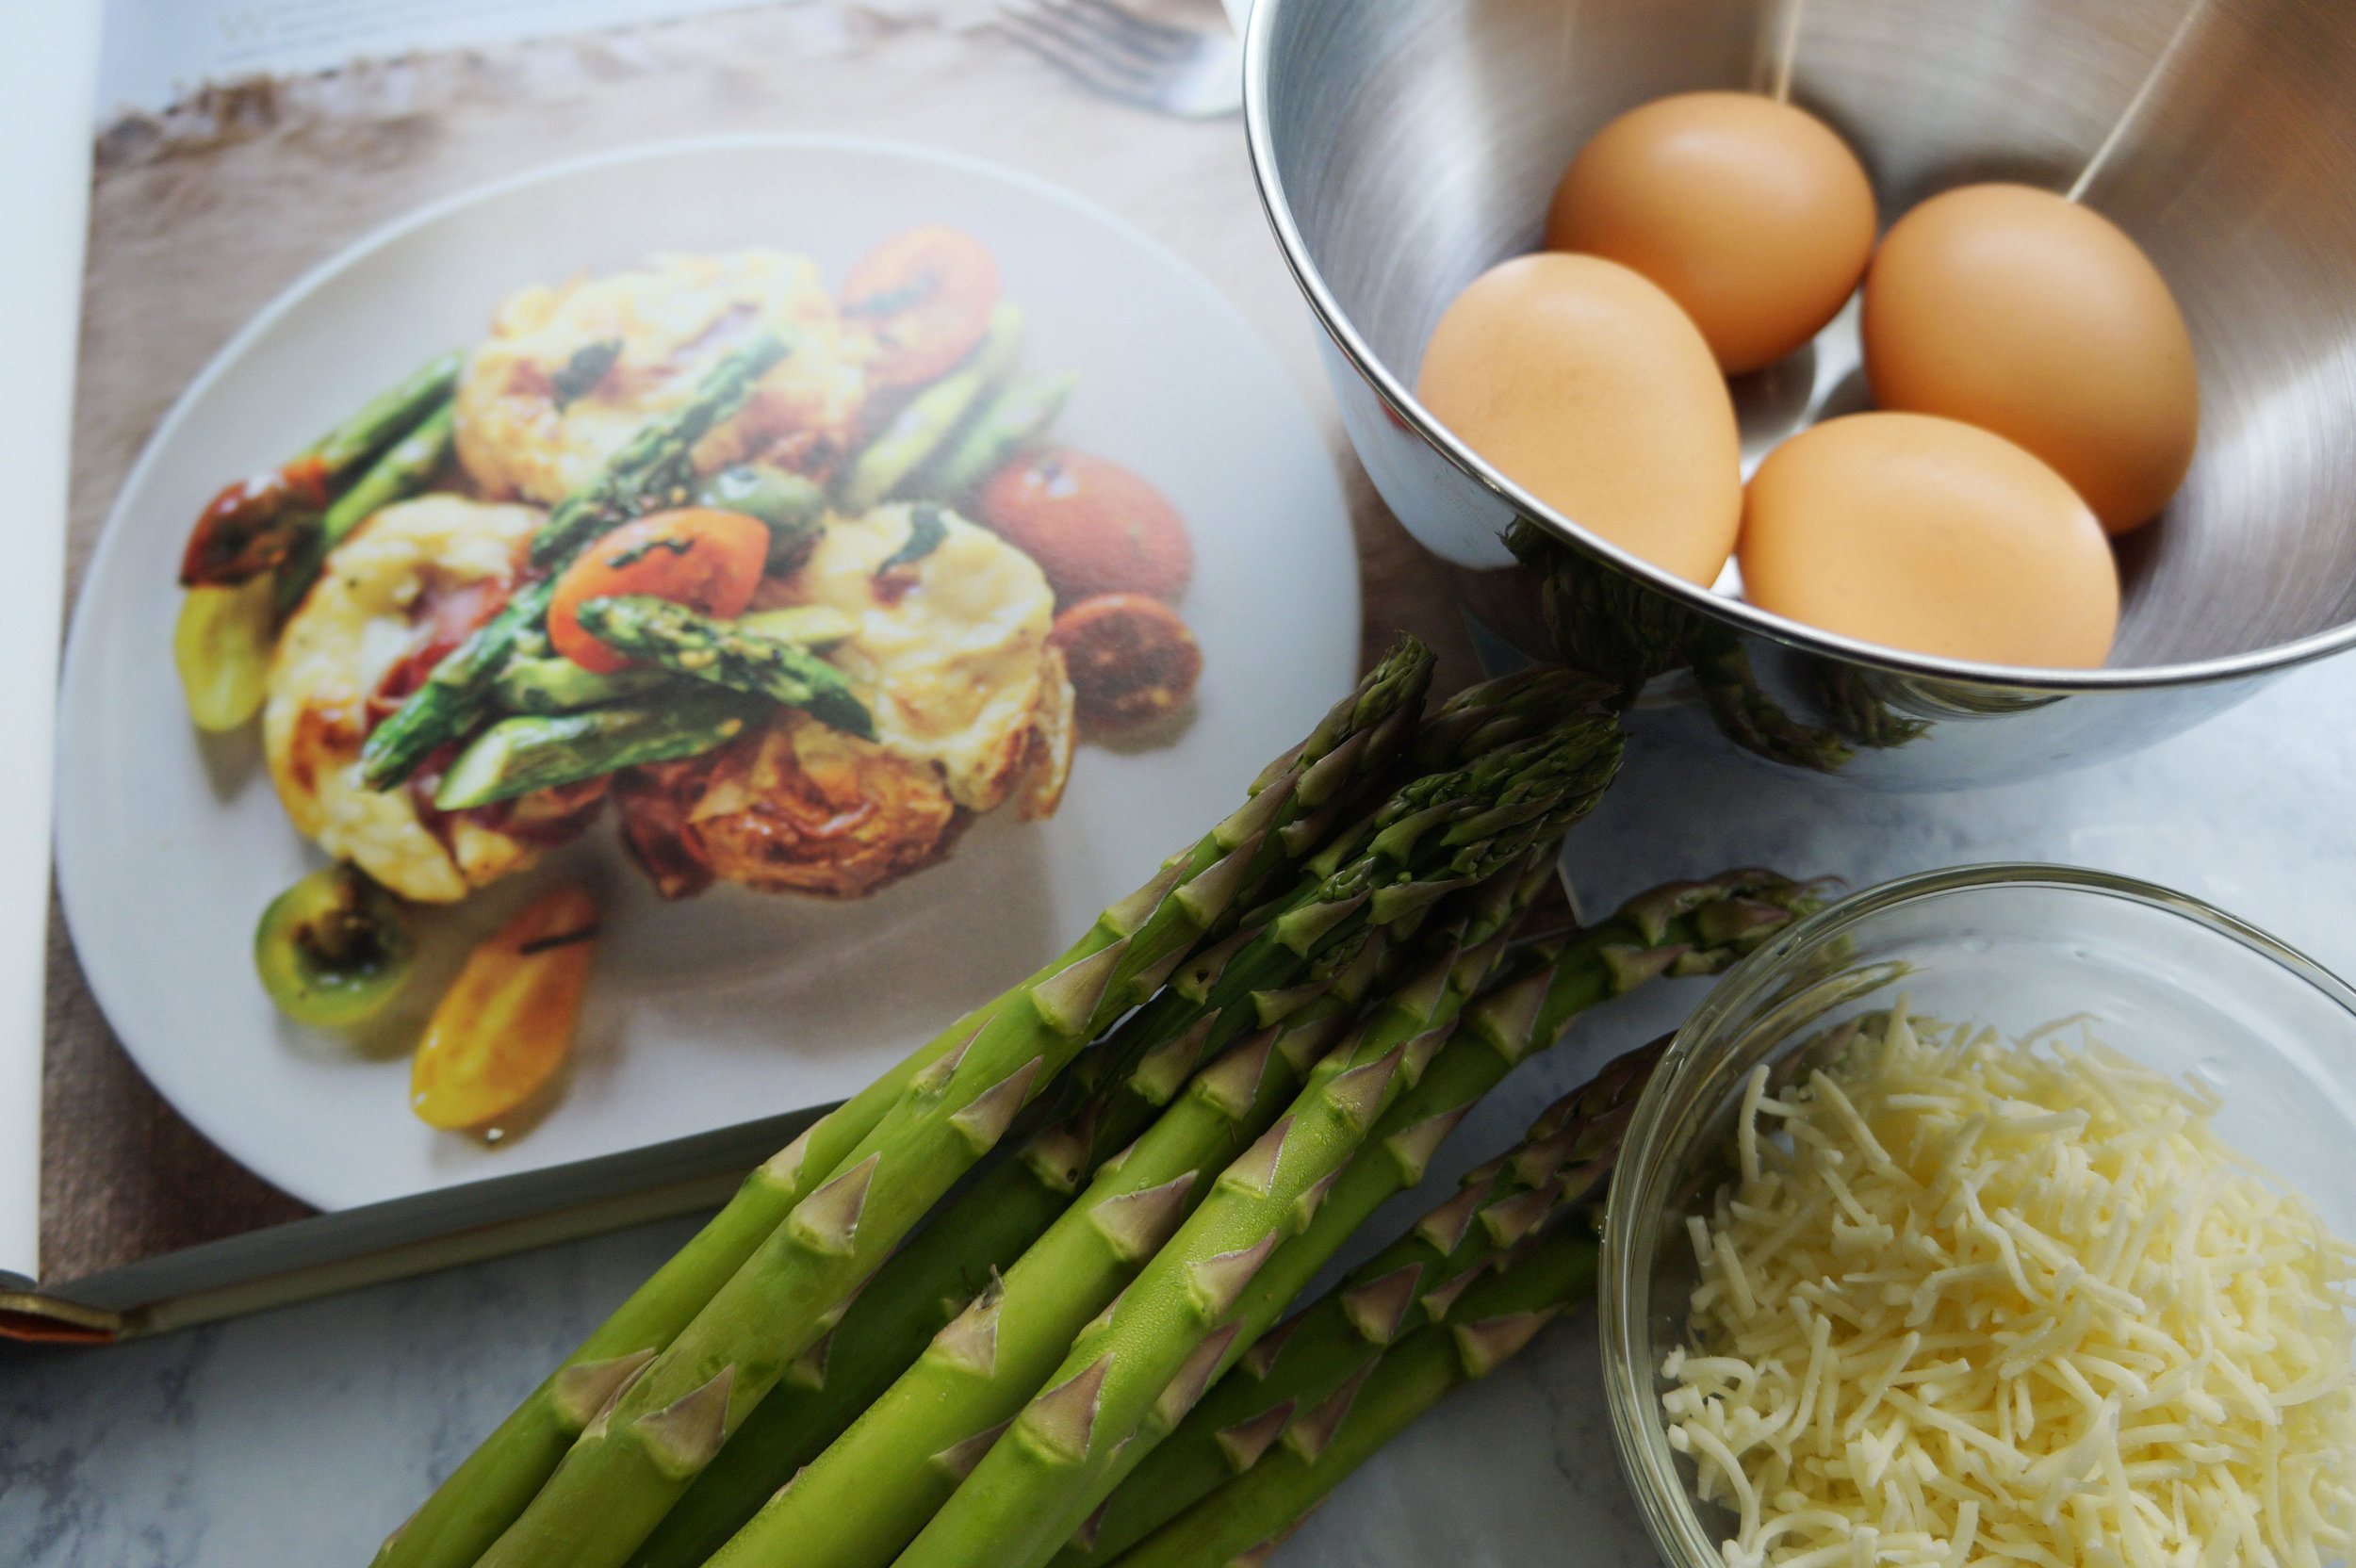 Andrea Fenise reviews Memphis Fashion and Food Blogger reviews The Seasoned Life Cookbook by Ayesha Curry